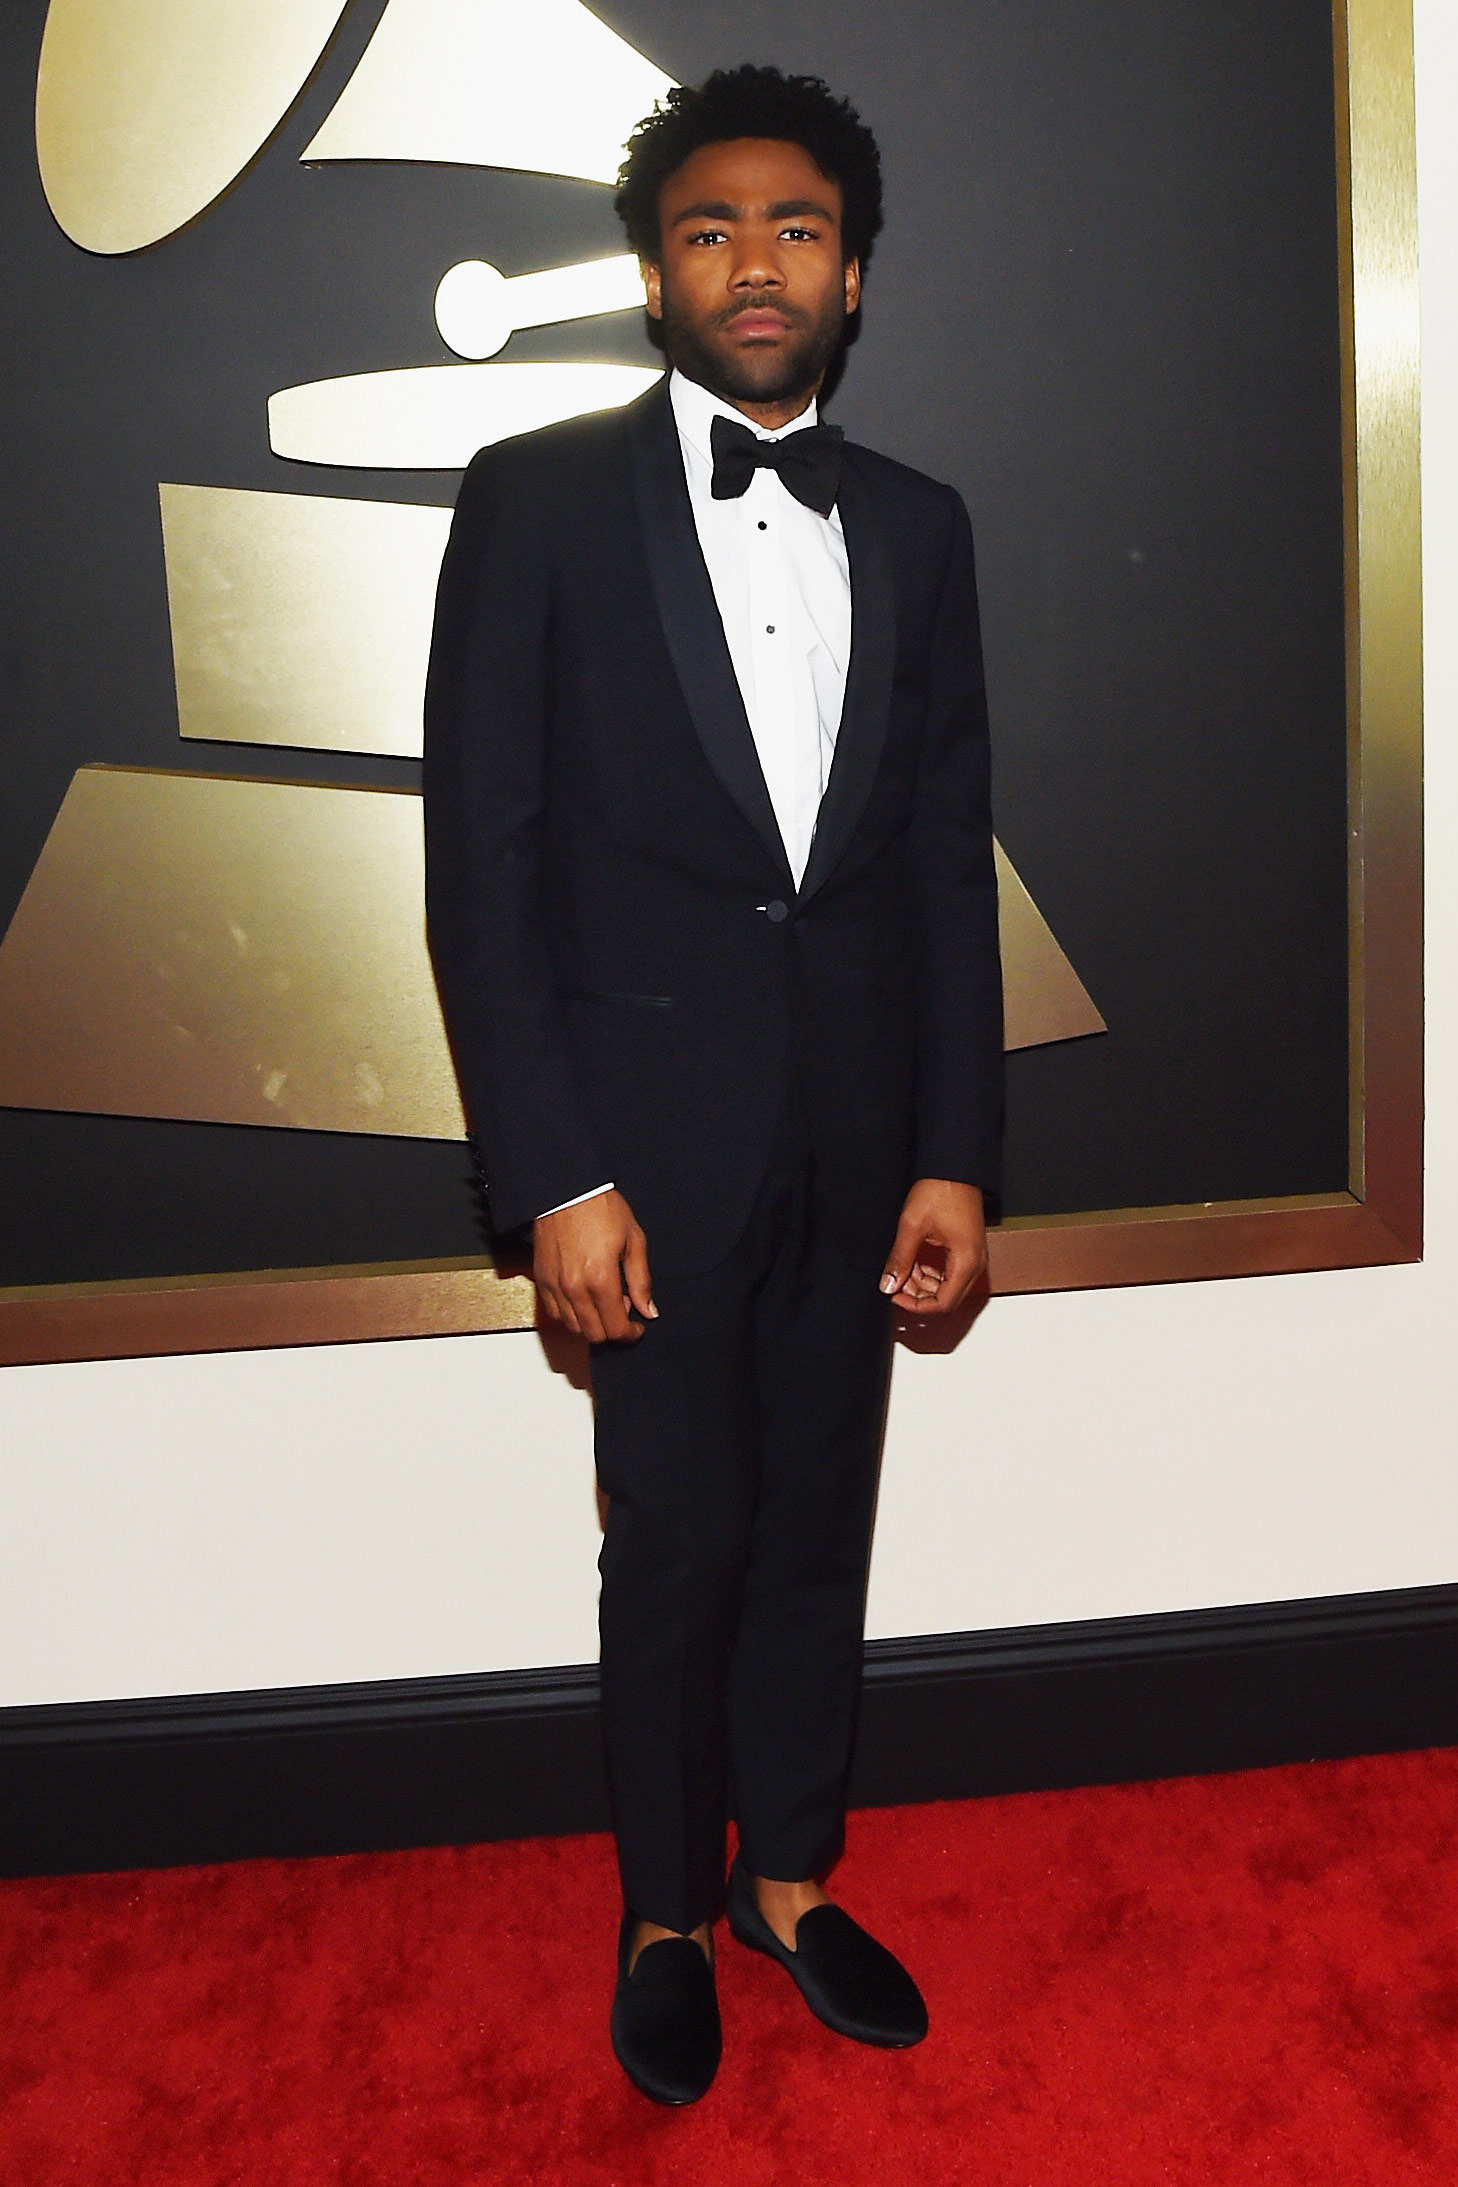 Photo of Childish Gambino at the Grammys